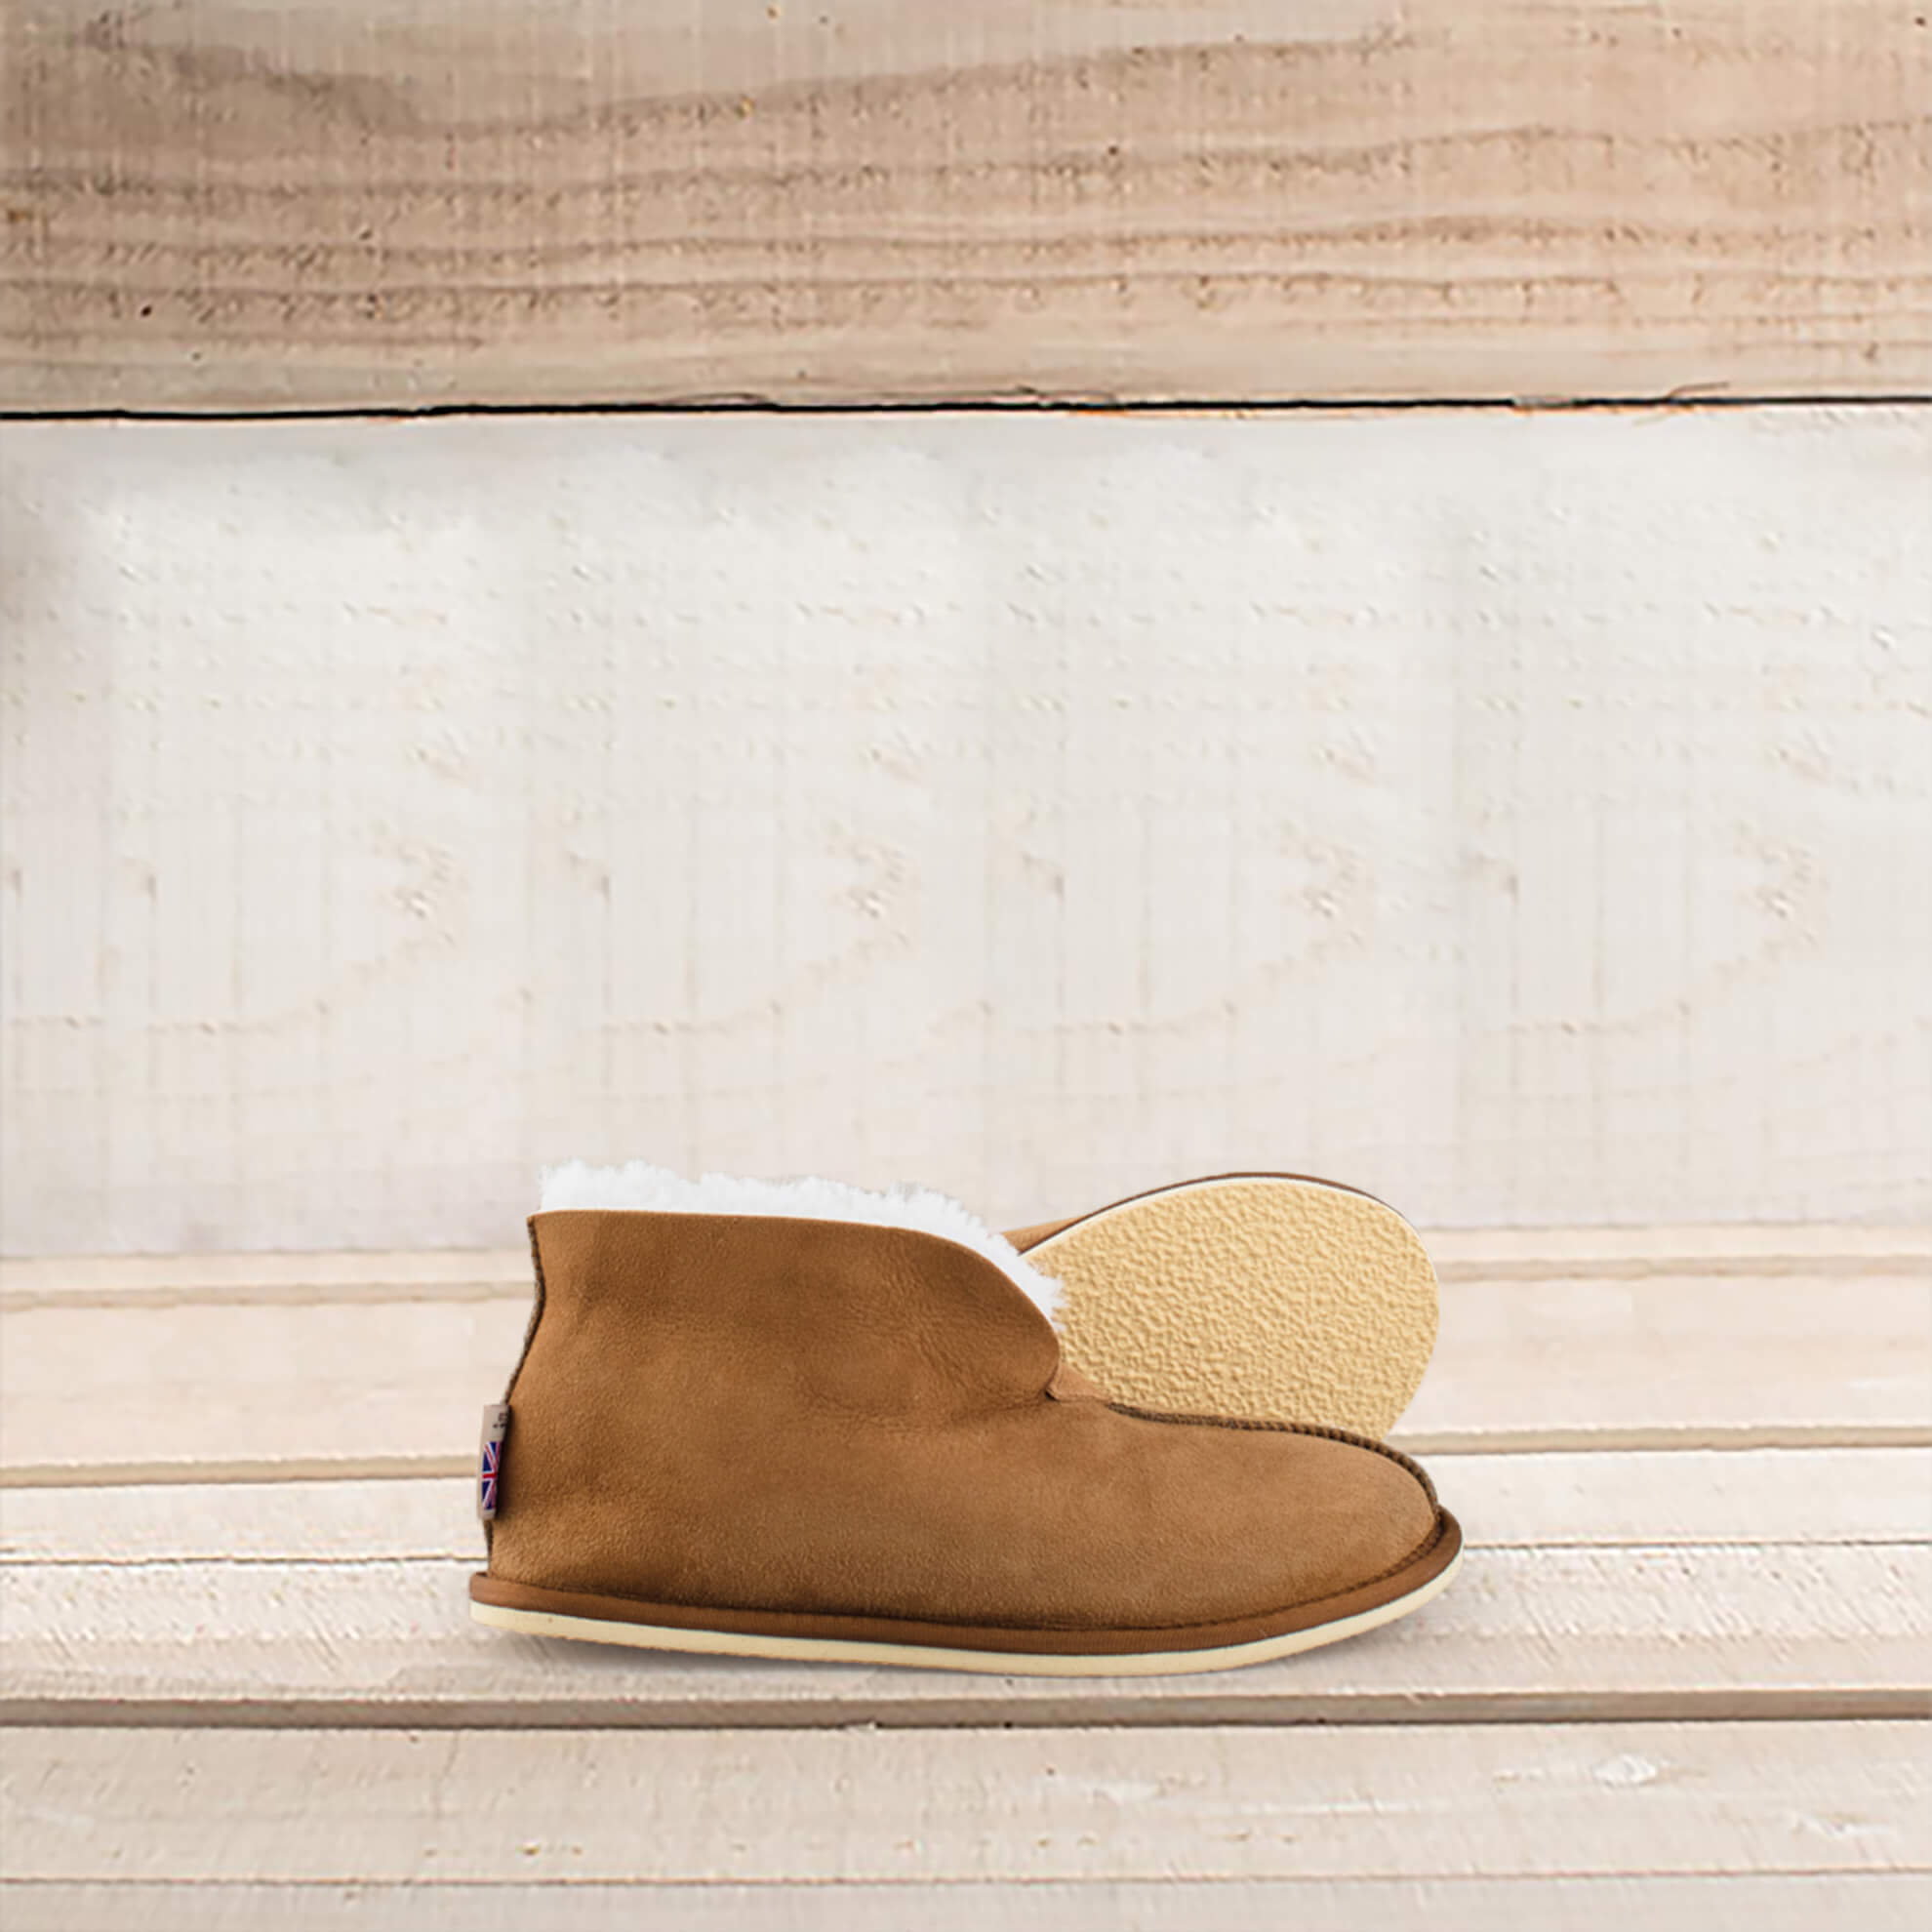 British-Made Shearling Bootee Slippers